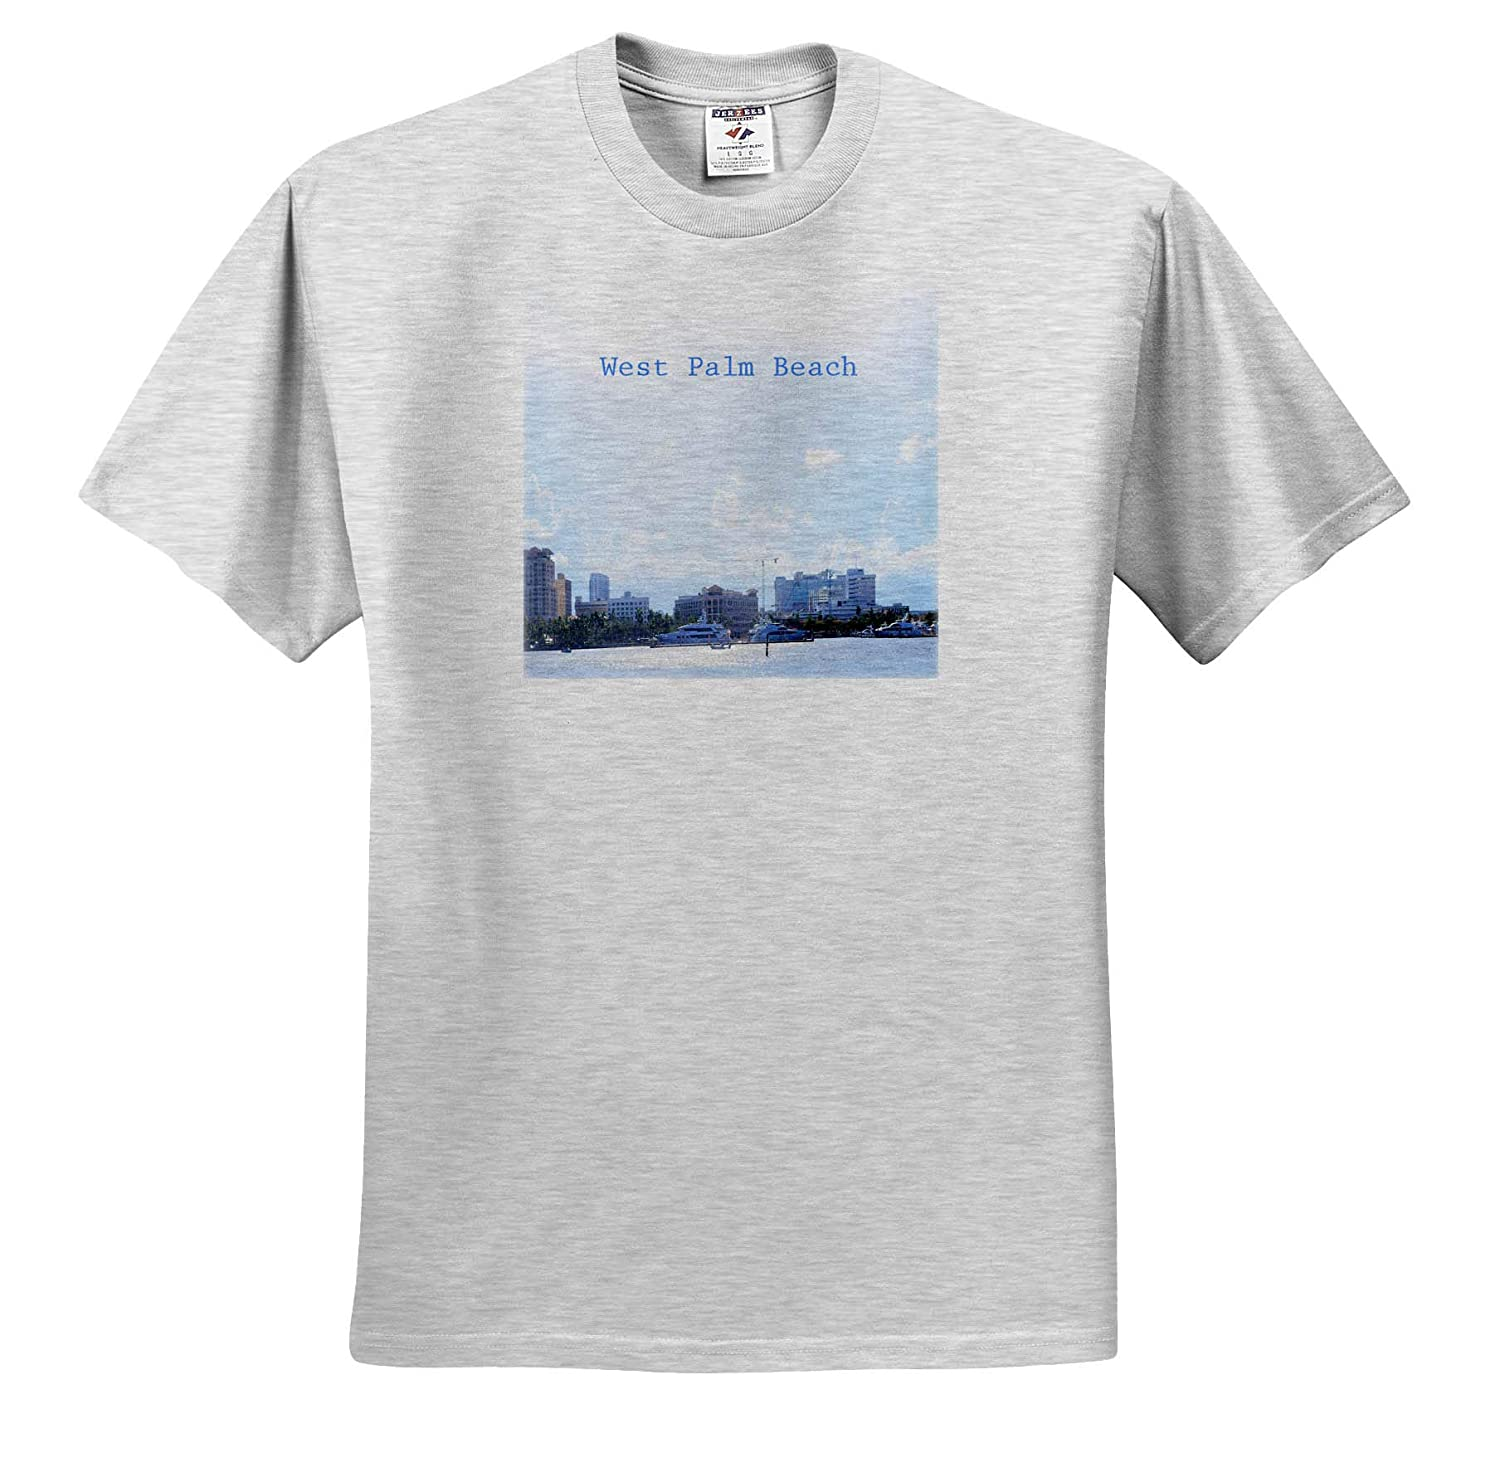 Image of Boats at West Palm Beach T-Shirts 3dRose Lens Art by Florene Fantastic Florida